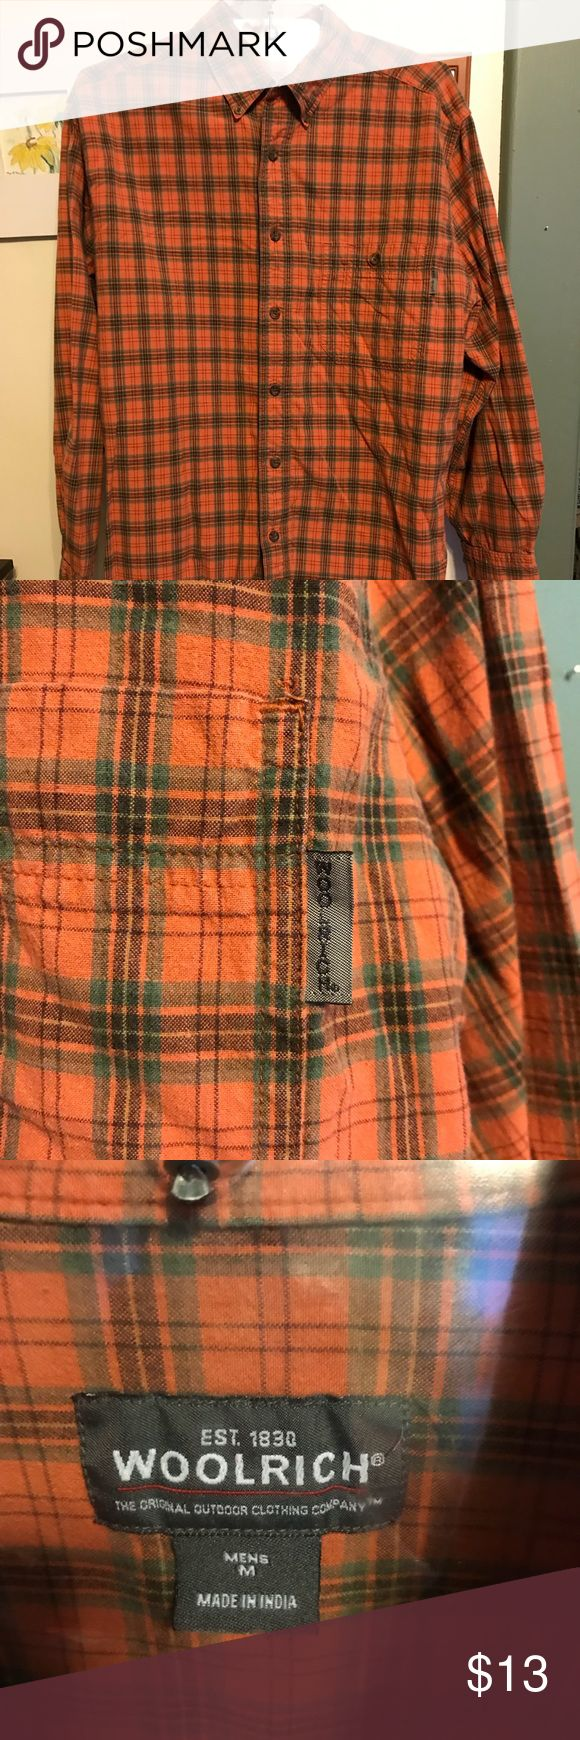 TIMBERLAND COTTON SHIRT. Sz. Medium. Orange NICE ORANGE PLAID TIMBERLAND SHIRT. A bit heavier cotton twill weave.  There is slight fading but no spots, holes, etc... many years of wear!! SIZE MEDIUM   NON SMOKER  BUNDLE 3+ ITEMS TO SAVE AT LEAST 20%!!  Accepting reasonable offers Timberland Shirts Casual Button Down Shirts